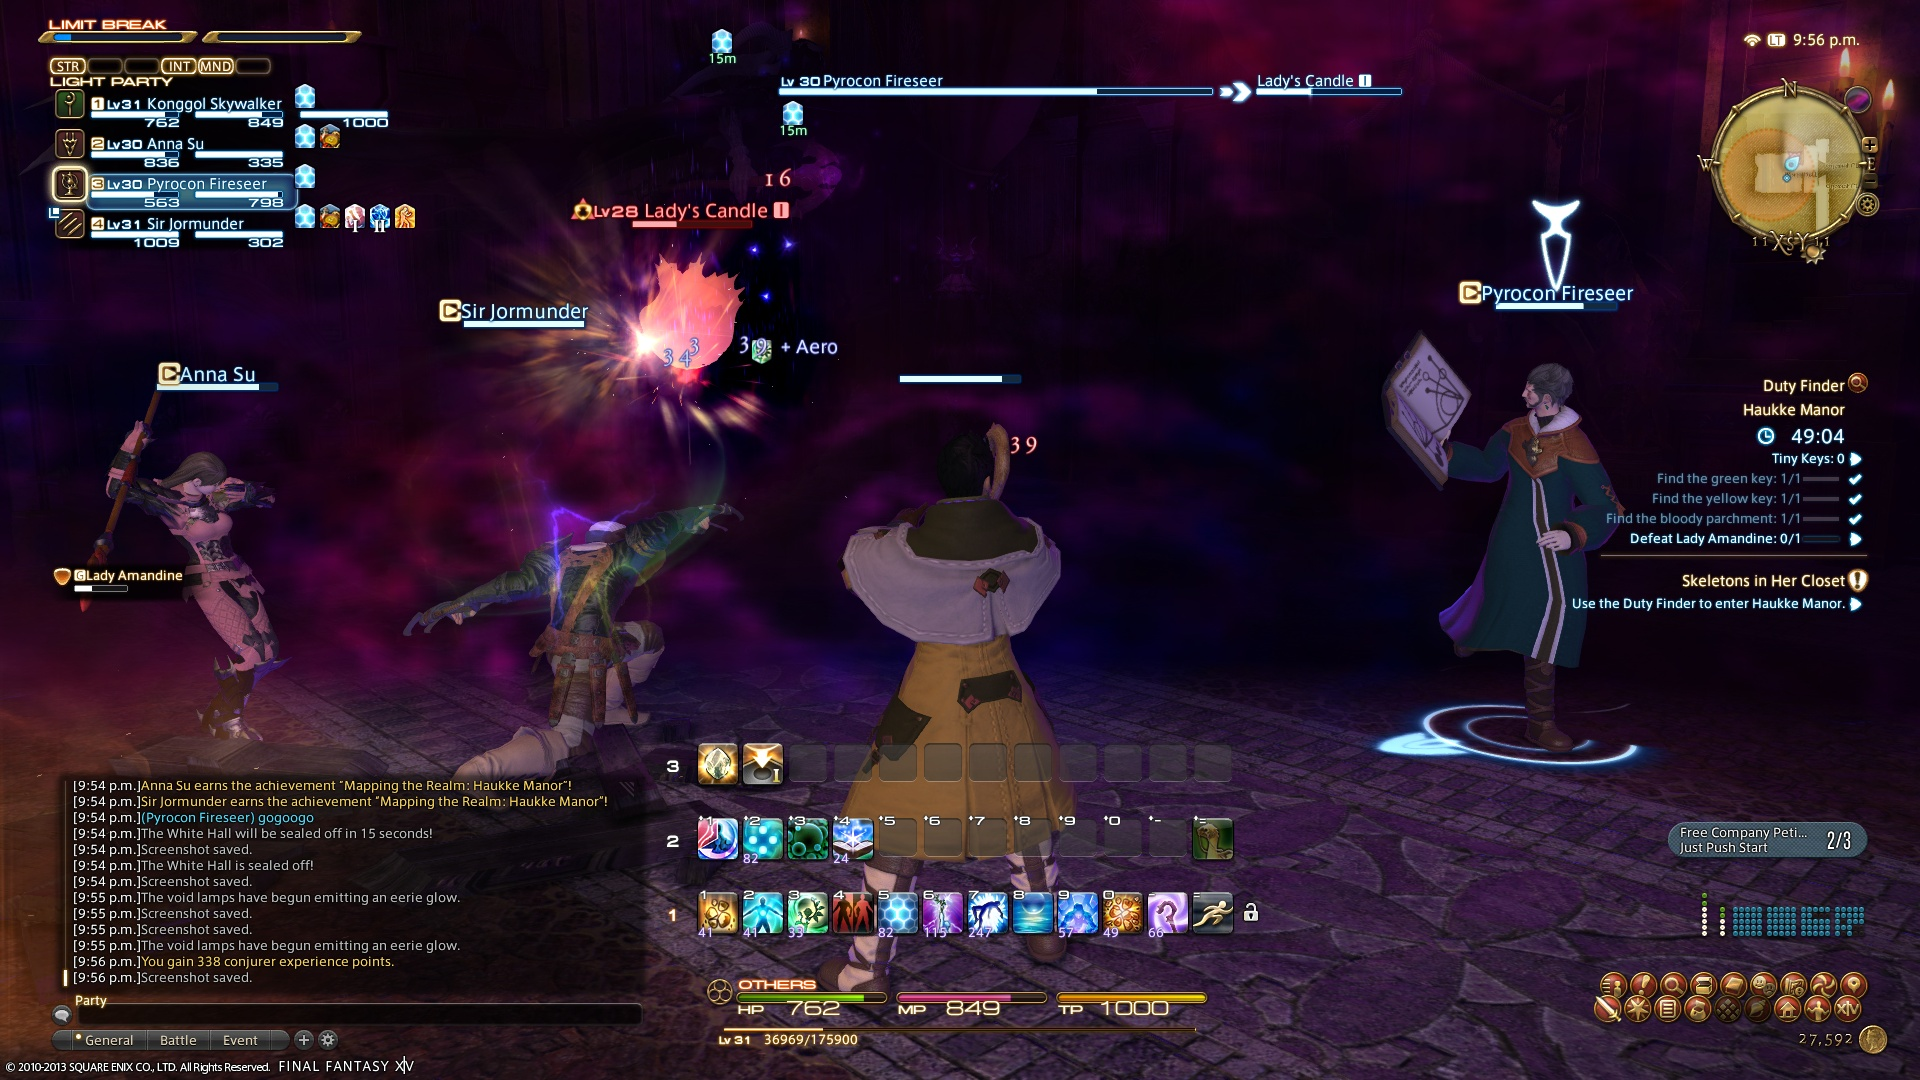 ... guides. Visit our Final Fantasy XIV: A Realm Reborn Game Guide page